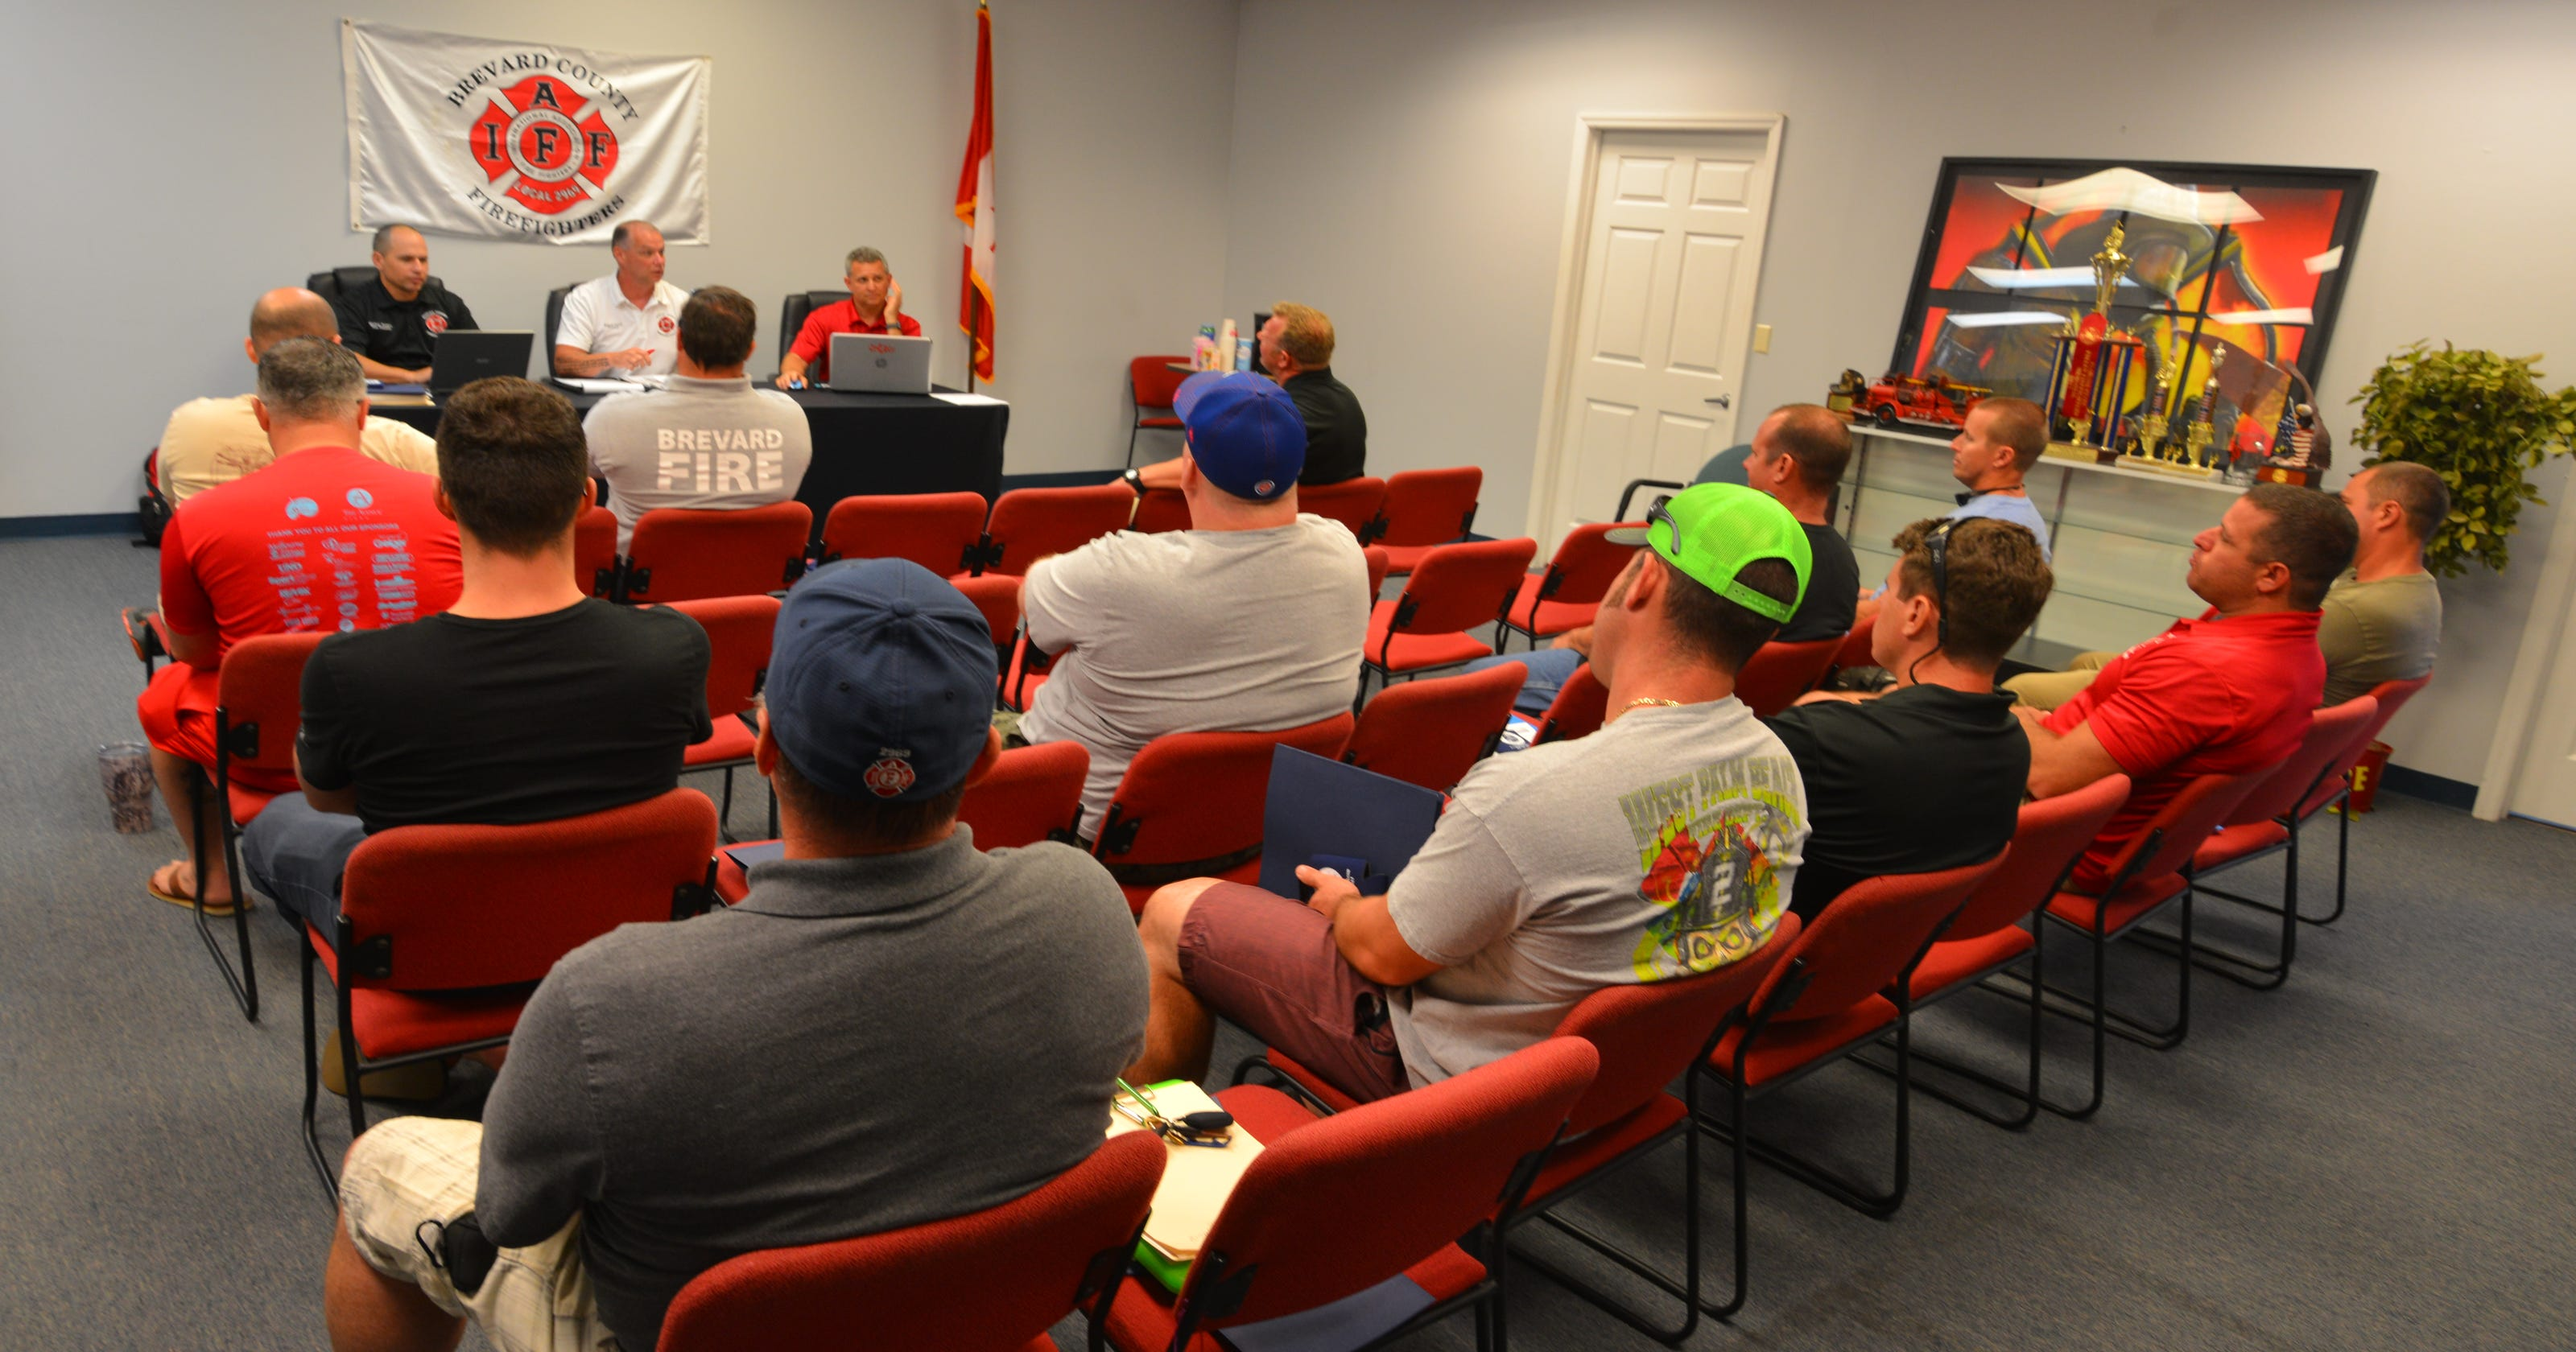 Brevard firefighters have new contract